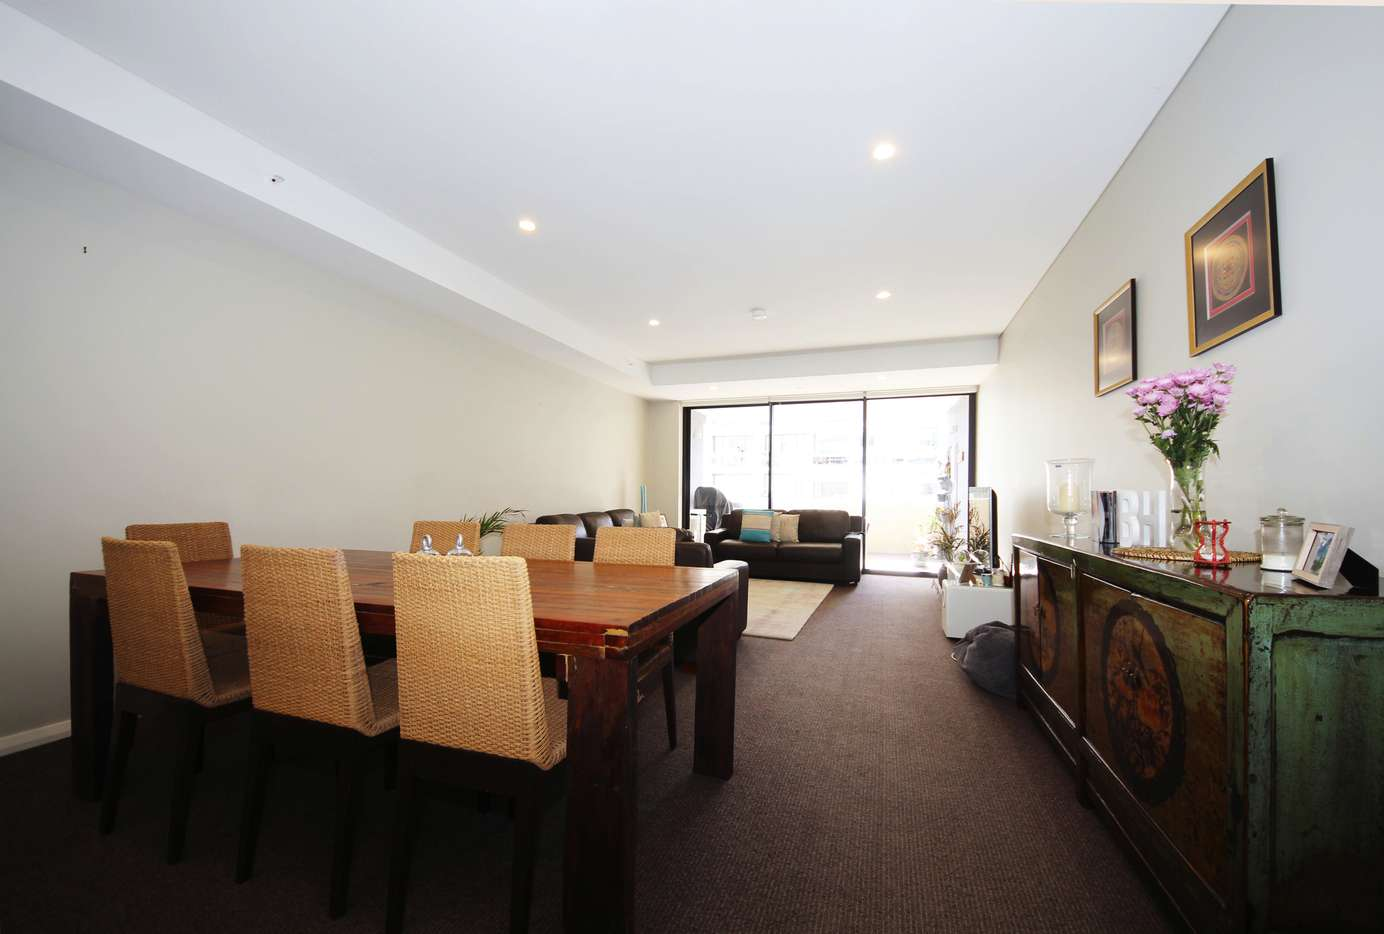 Main view of Homely apartment listing, 106/9 Atchison Street, St Leonards, NSW 2065